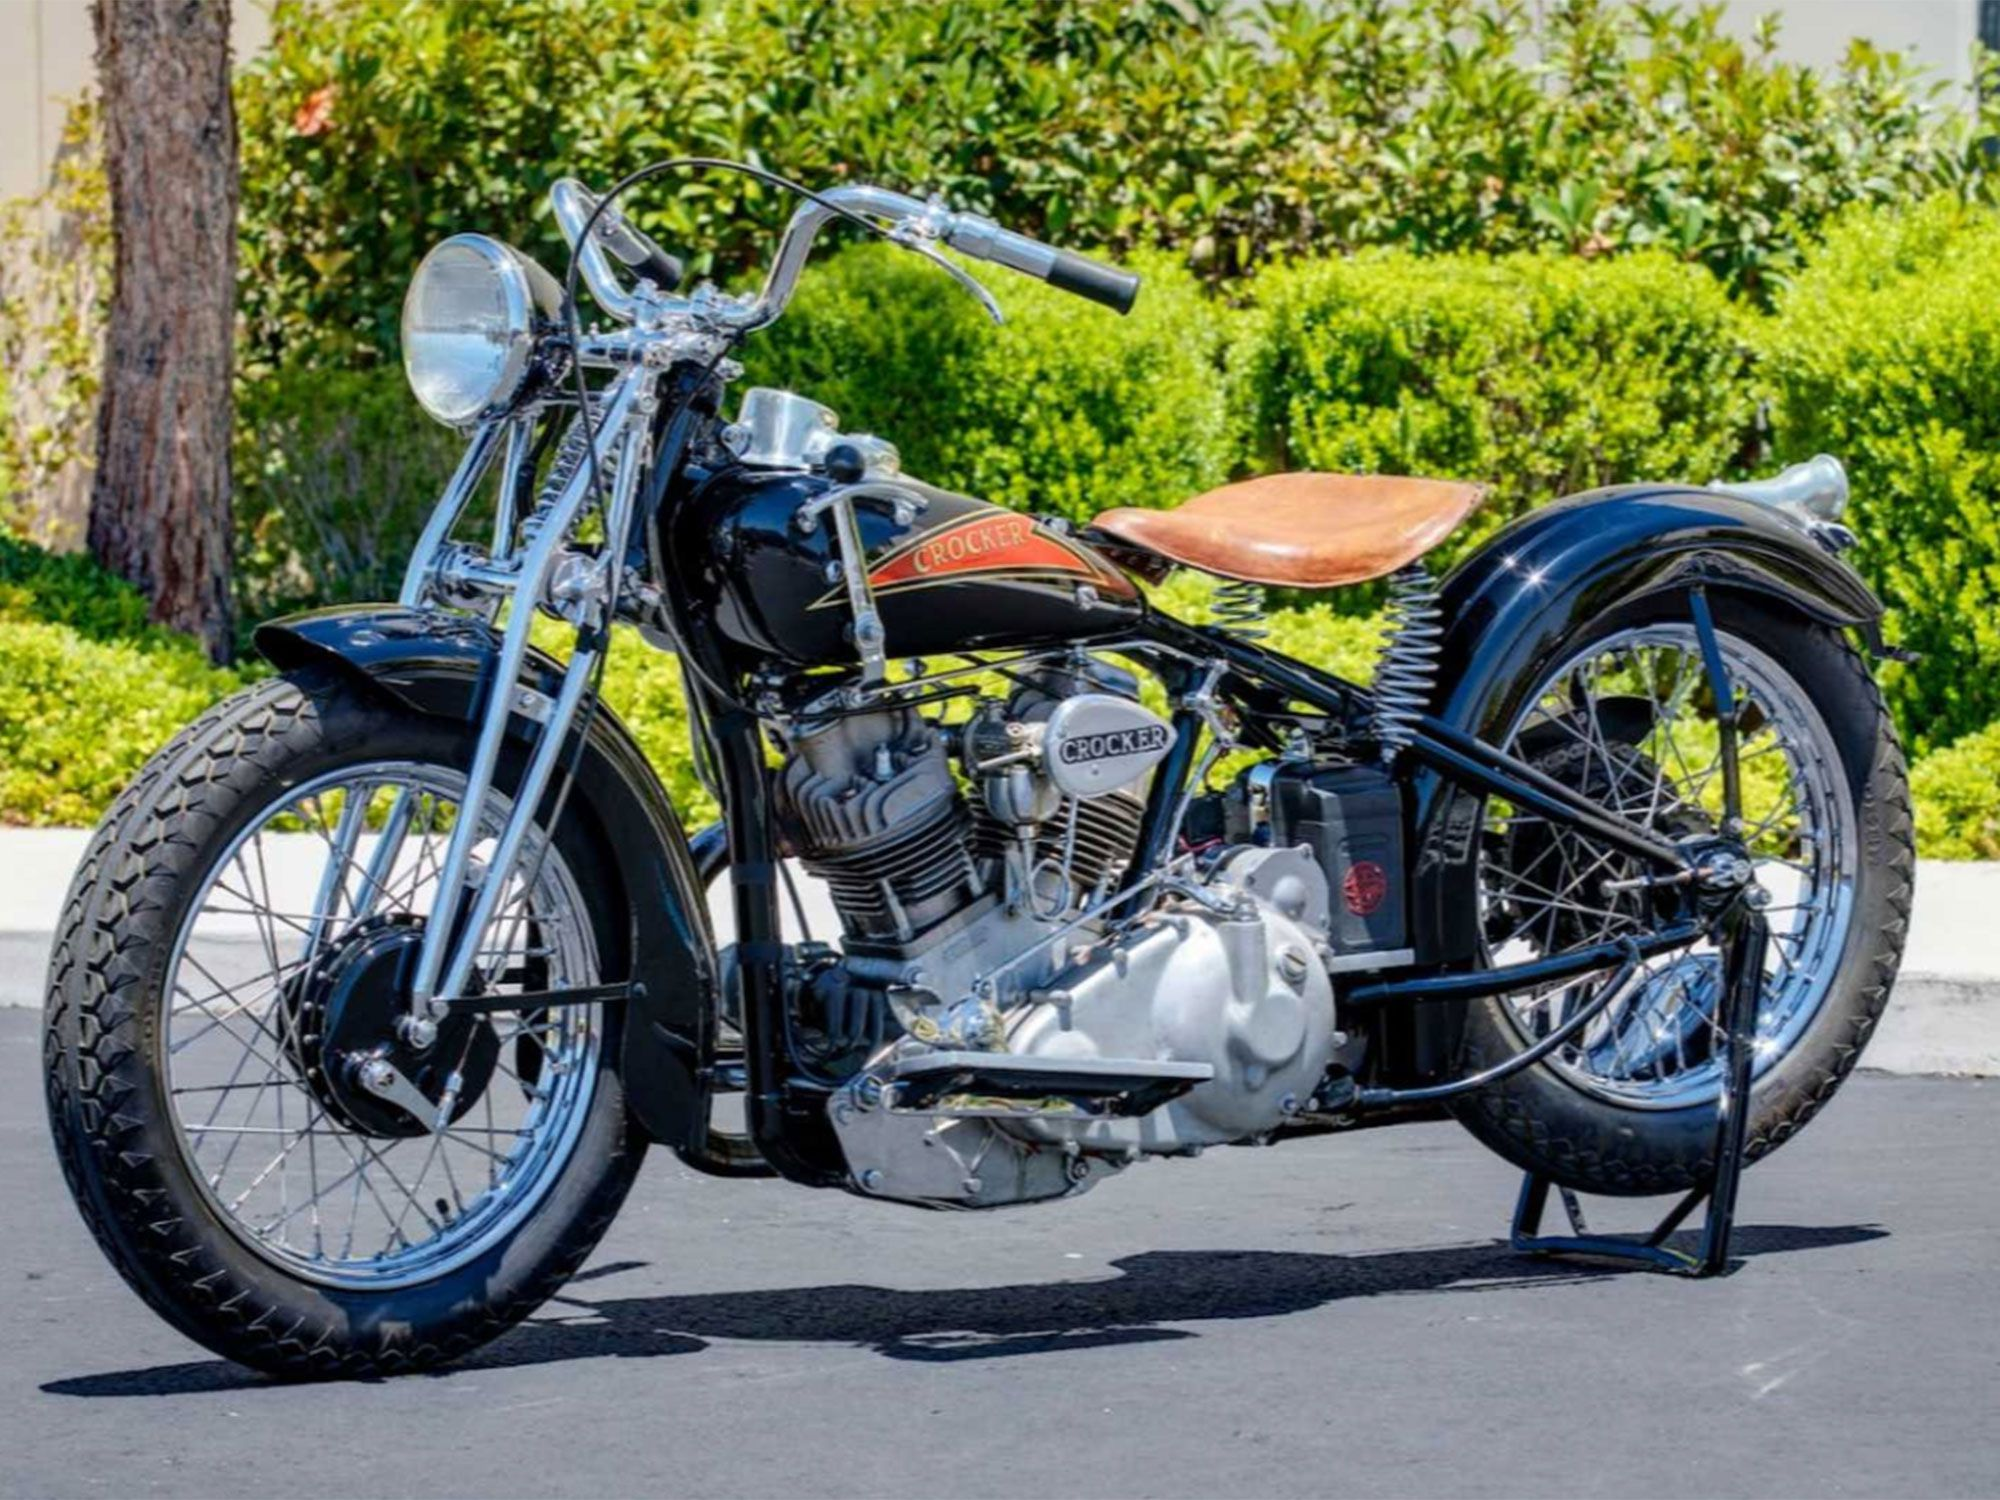 4. Yes, another $715,000 bike, this Crocker making a tie for fourth on this remarkable list.